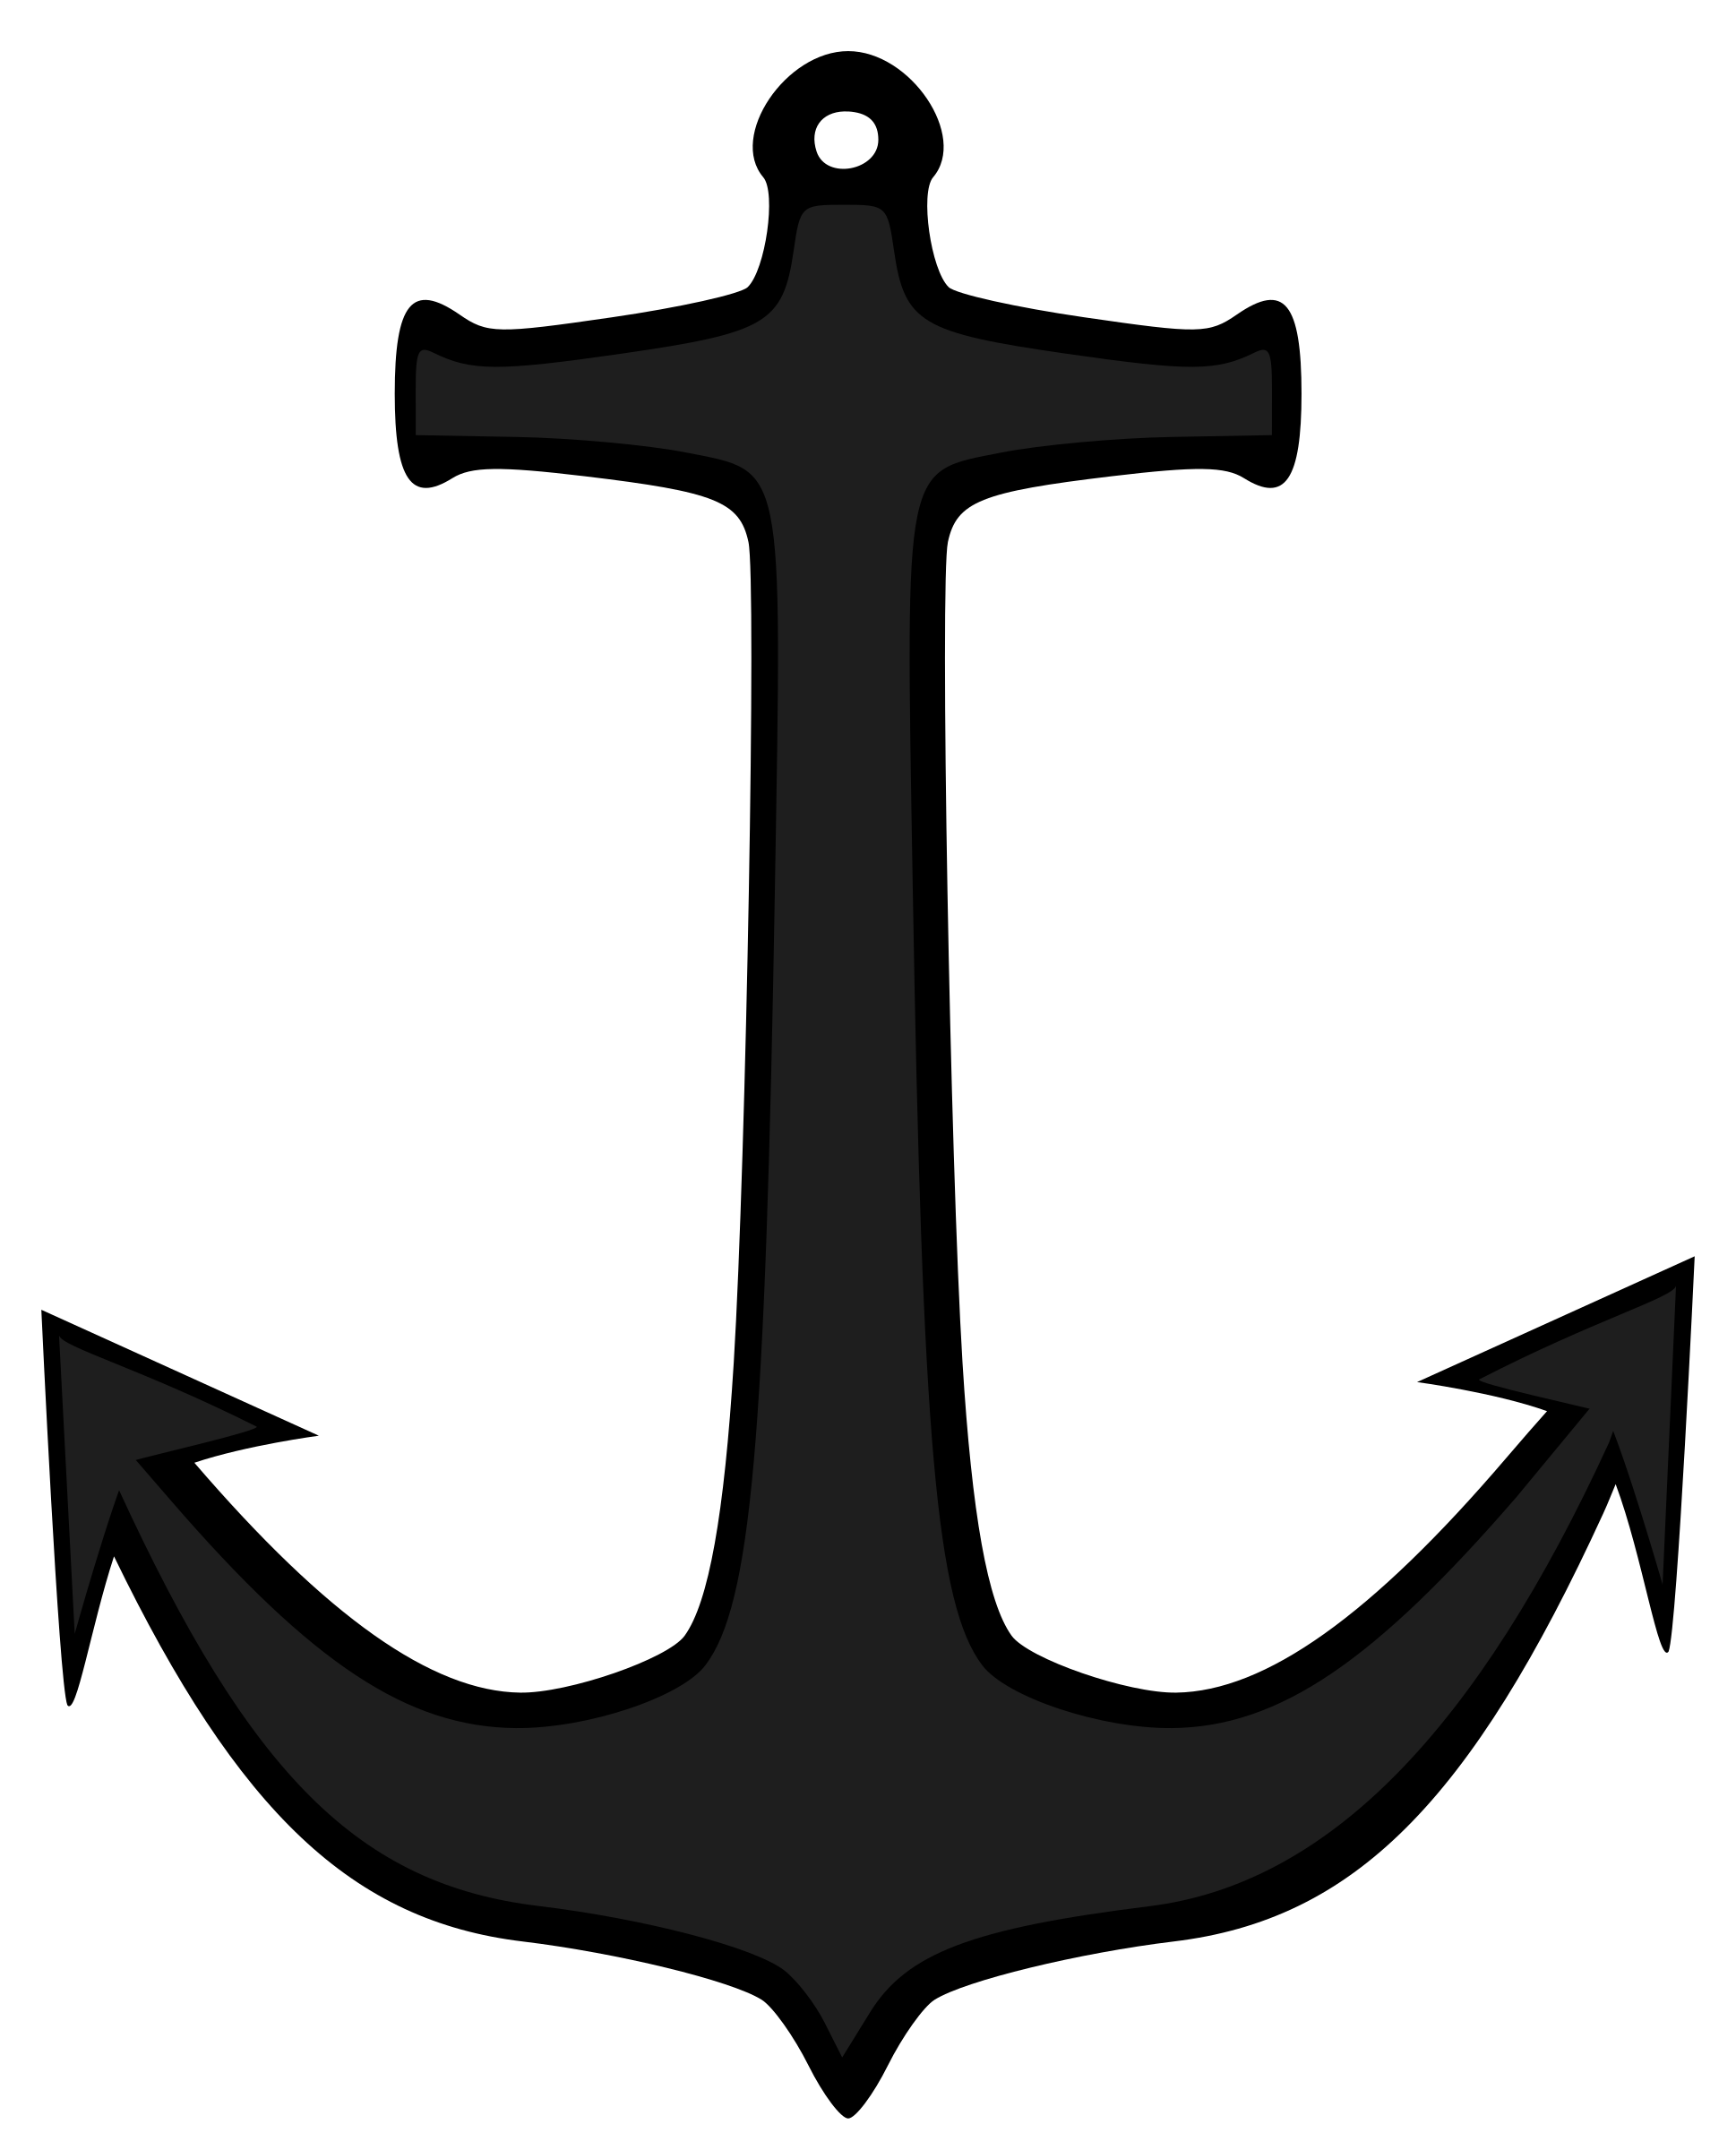 Simple big image png. Wheel clipart anchor